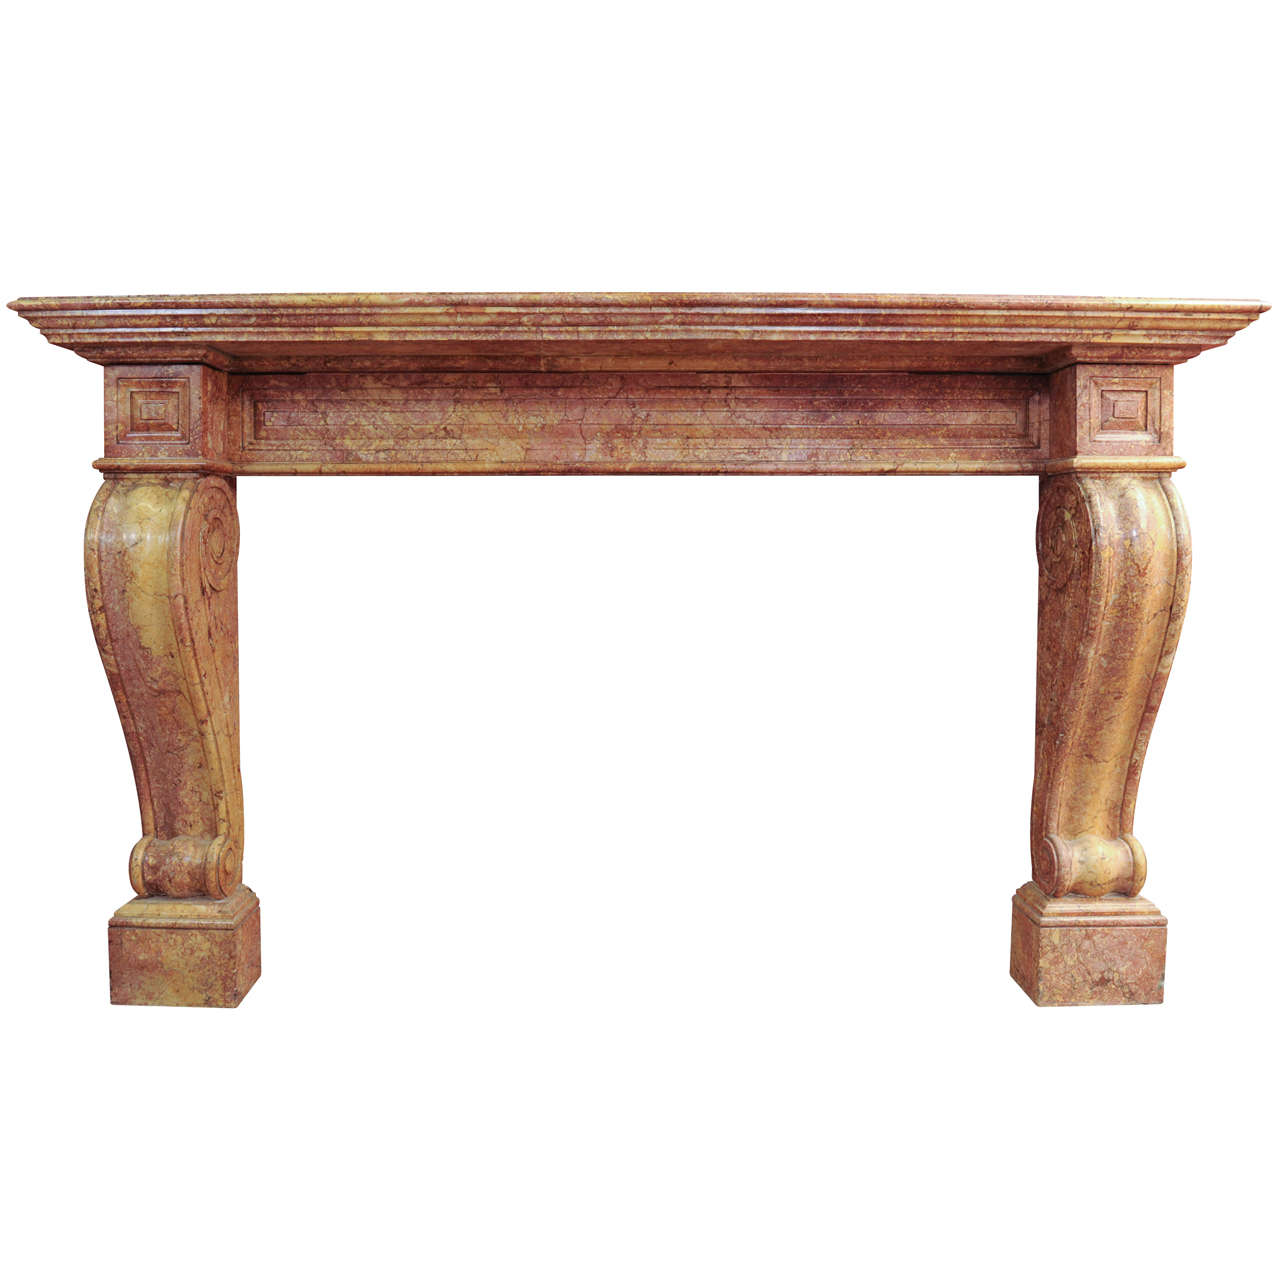 A 19th century French Empire marble fireplace / mantel piece, circa 1820